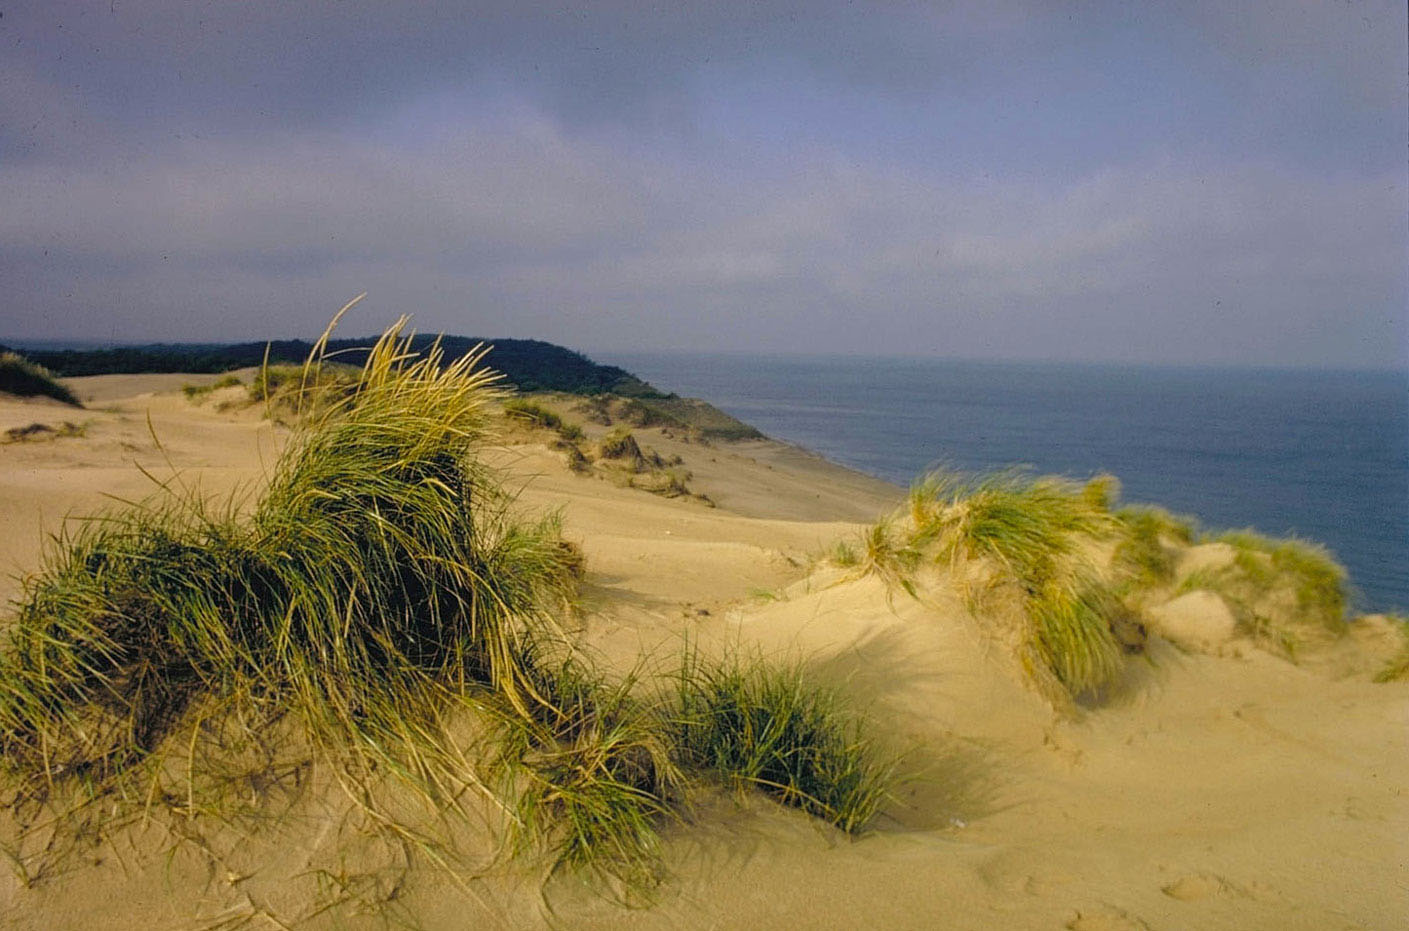 Indiana Dunes National Lakeshore. Credit: National Park Service, M. Woodbridge Williams. Used under Creative Commons License.